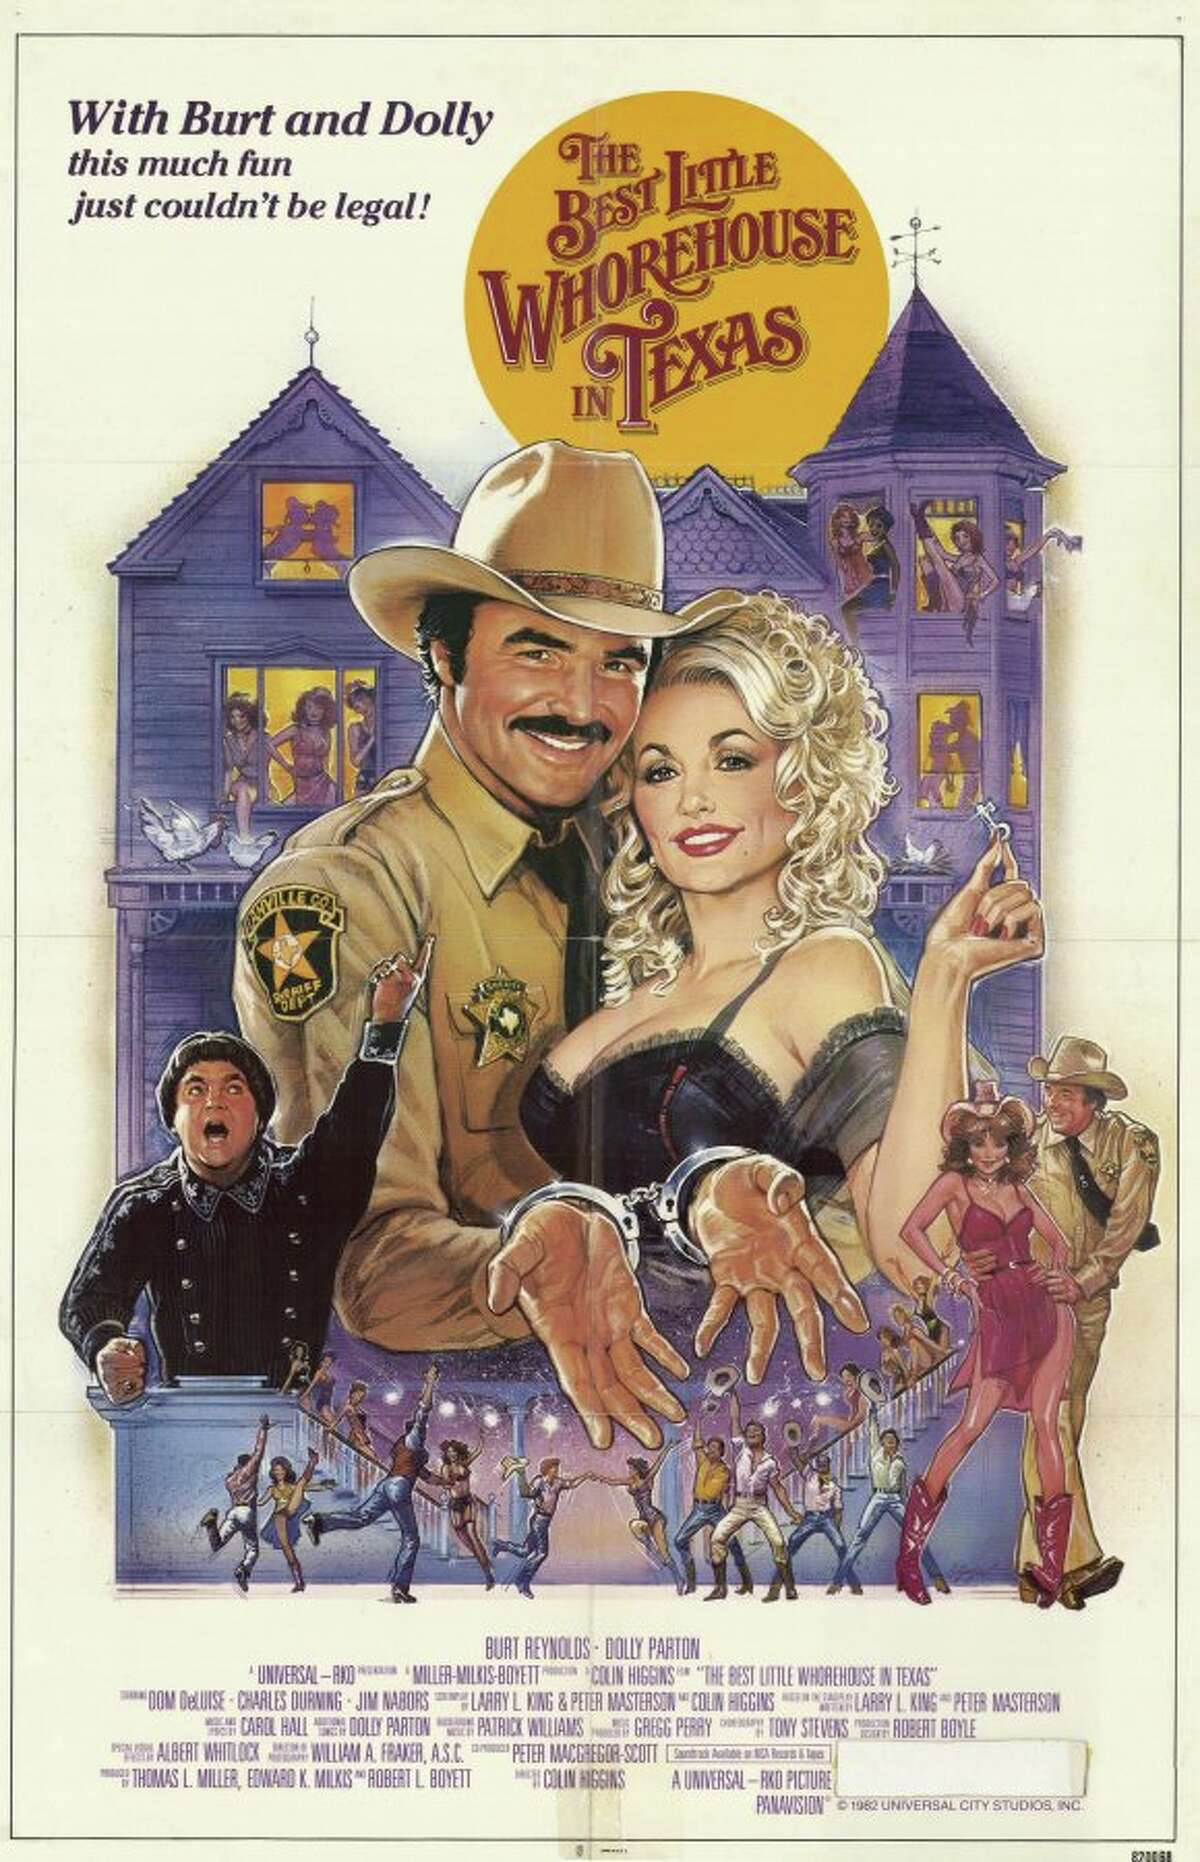 The Best Little Whorehouse in Texas:  This movie has everything: a well-known brothel, a fiery TV preacher, a muck-raking journalist and Dolly Parton. Based on the real-life Chicken Ranch, a brothel that was kept open for decades thanks to the cozy relationship between the madam of the house, law enforcement and government officials. It's a great story and sheds light on the